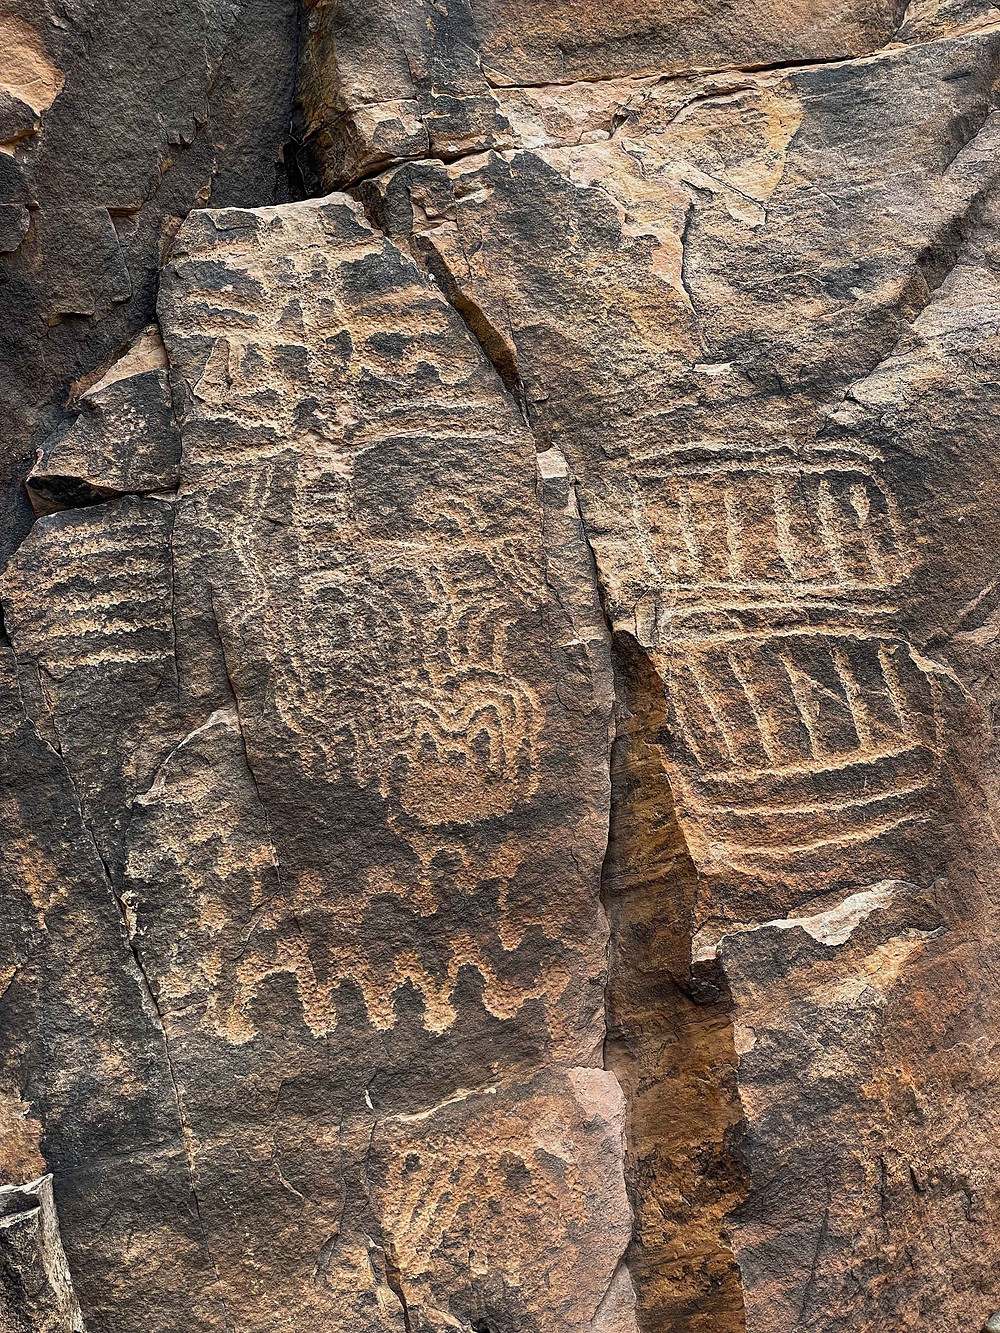 Ancient Petroglyphs from many ancient peoples are found in the Parown Gap, near Parowan Utah